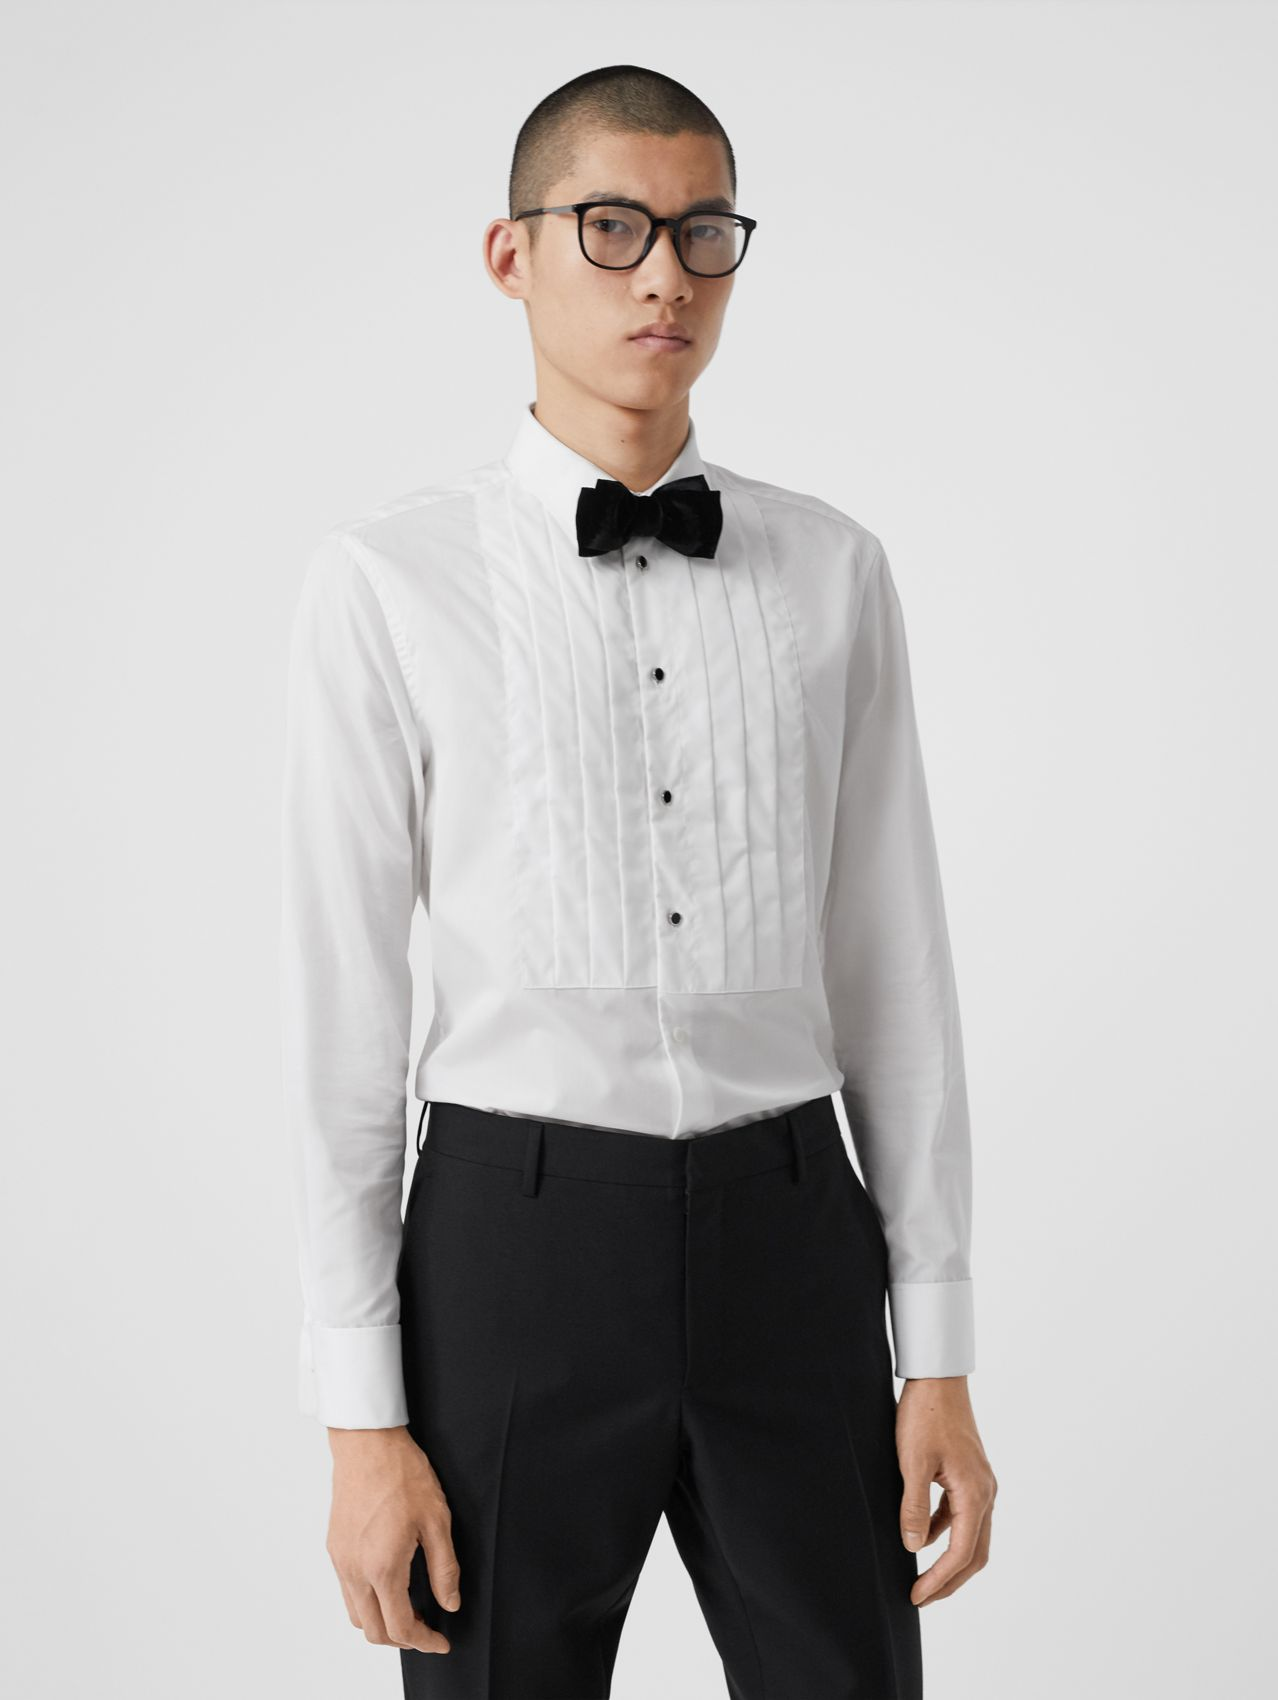 Pleated Bib Cotton Poplin Dress Shirt (Optic White)